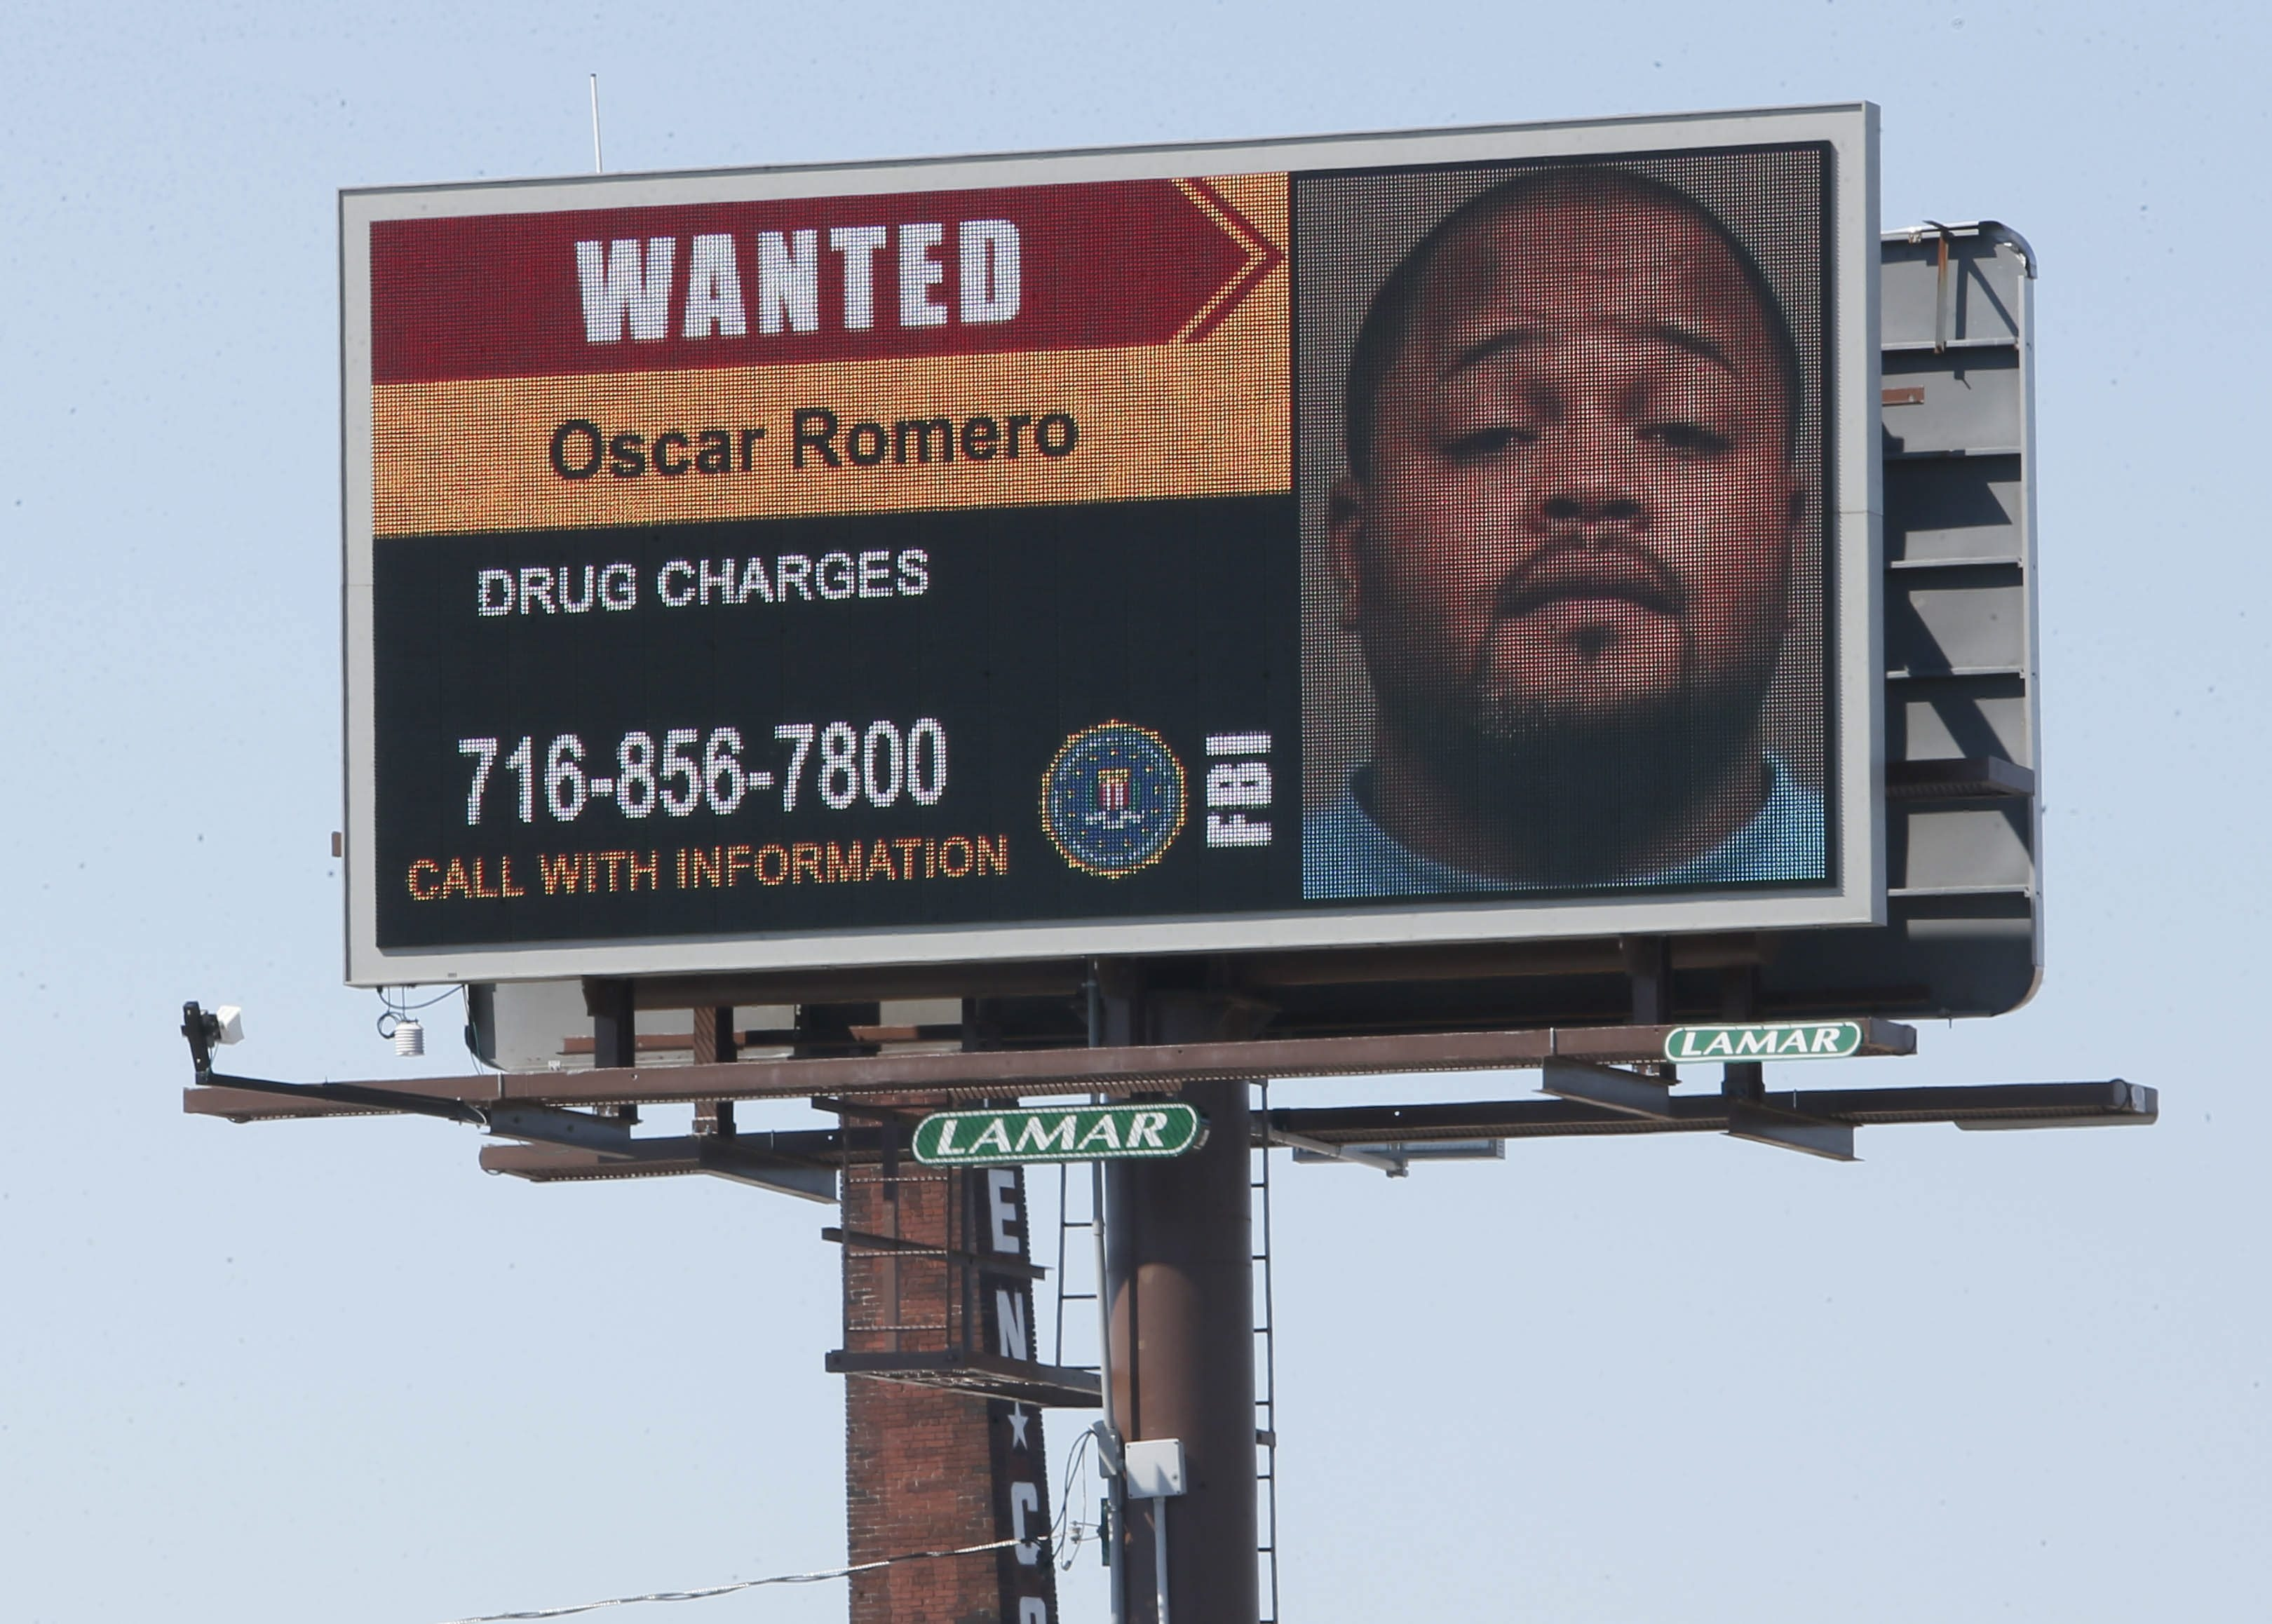 The FBI is using this billboard to enlist help from the community in locating drug suspect Oscar Romero, who is believed to have recently returned to the area from Puerto Rico.